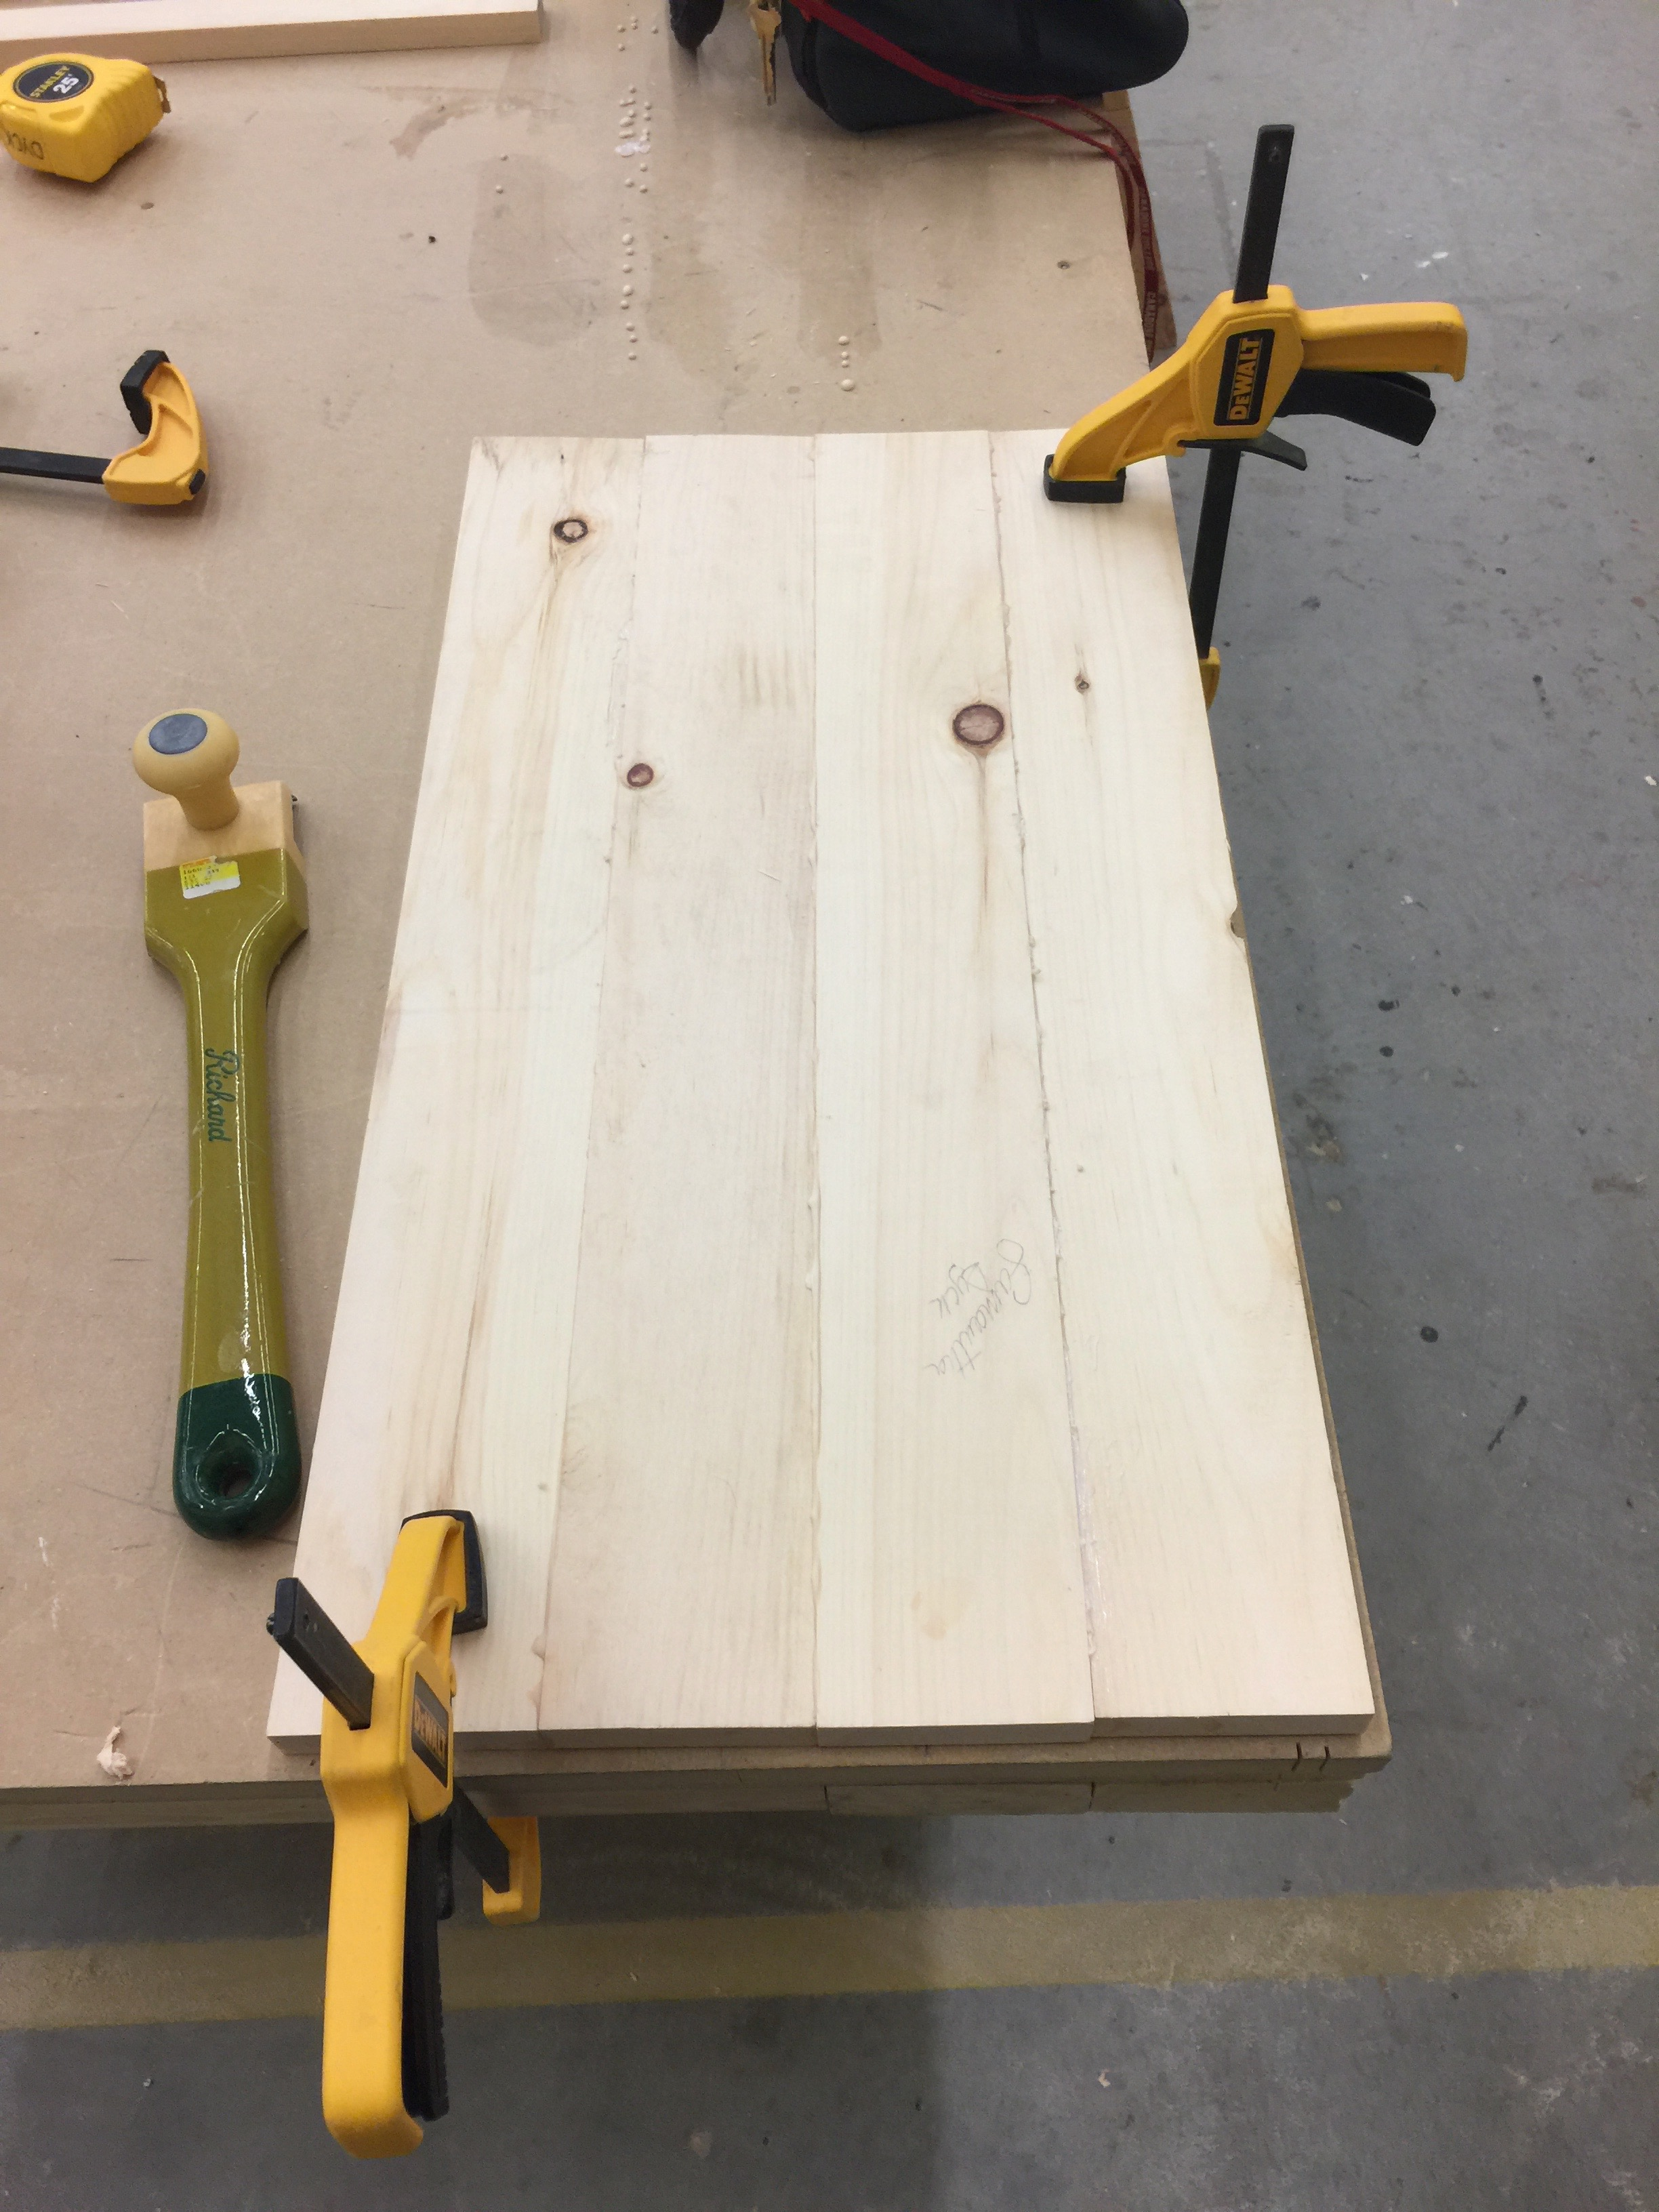 Wood clamped down